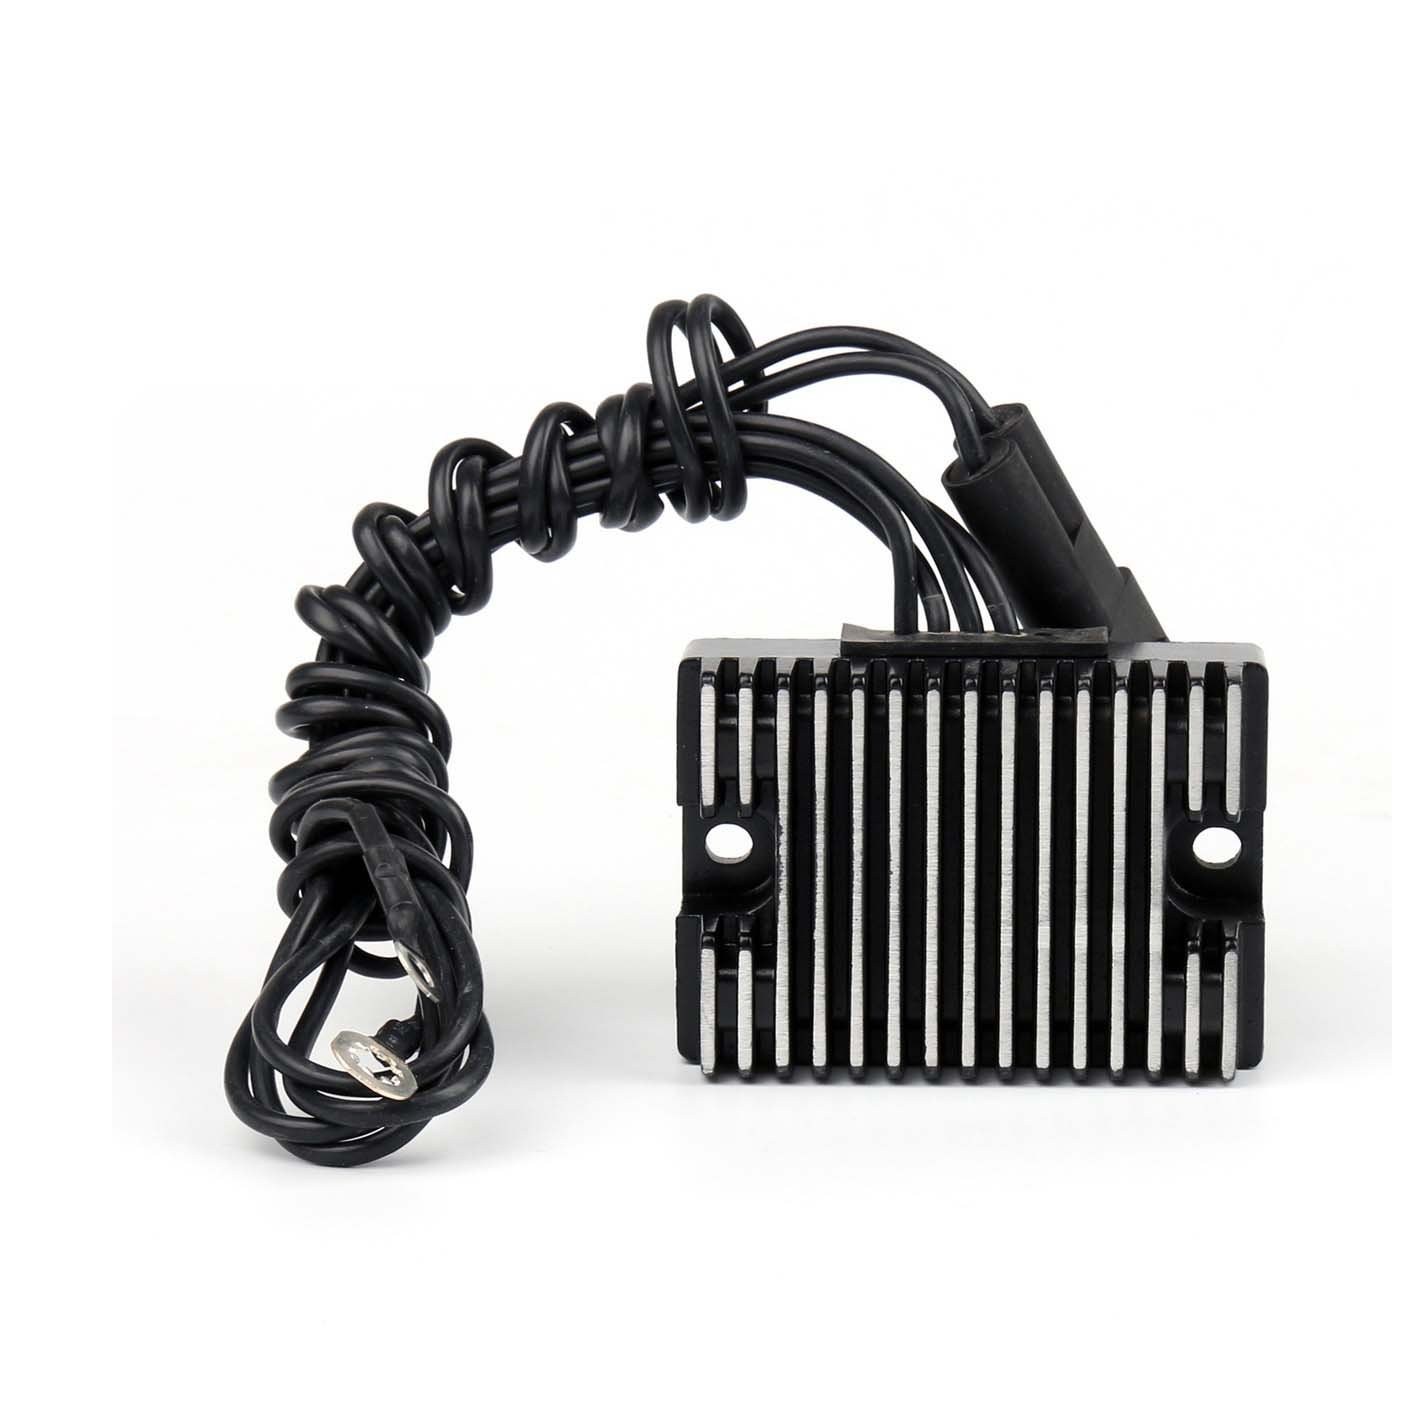 WinllyAT Motorcycle Aluminum Voltage Regulator Rectifier For Harley-Davidson FXSTD SOFTAIL DEUCE 2000 Harley-Davidson FXD SUPER GLIDE 1450cc 1999-2003